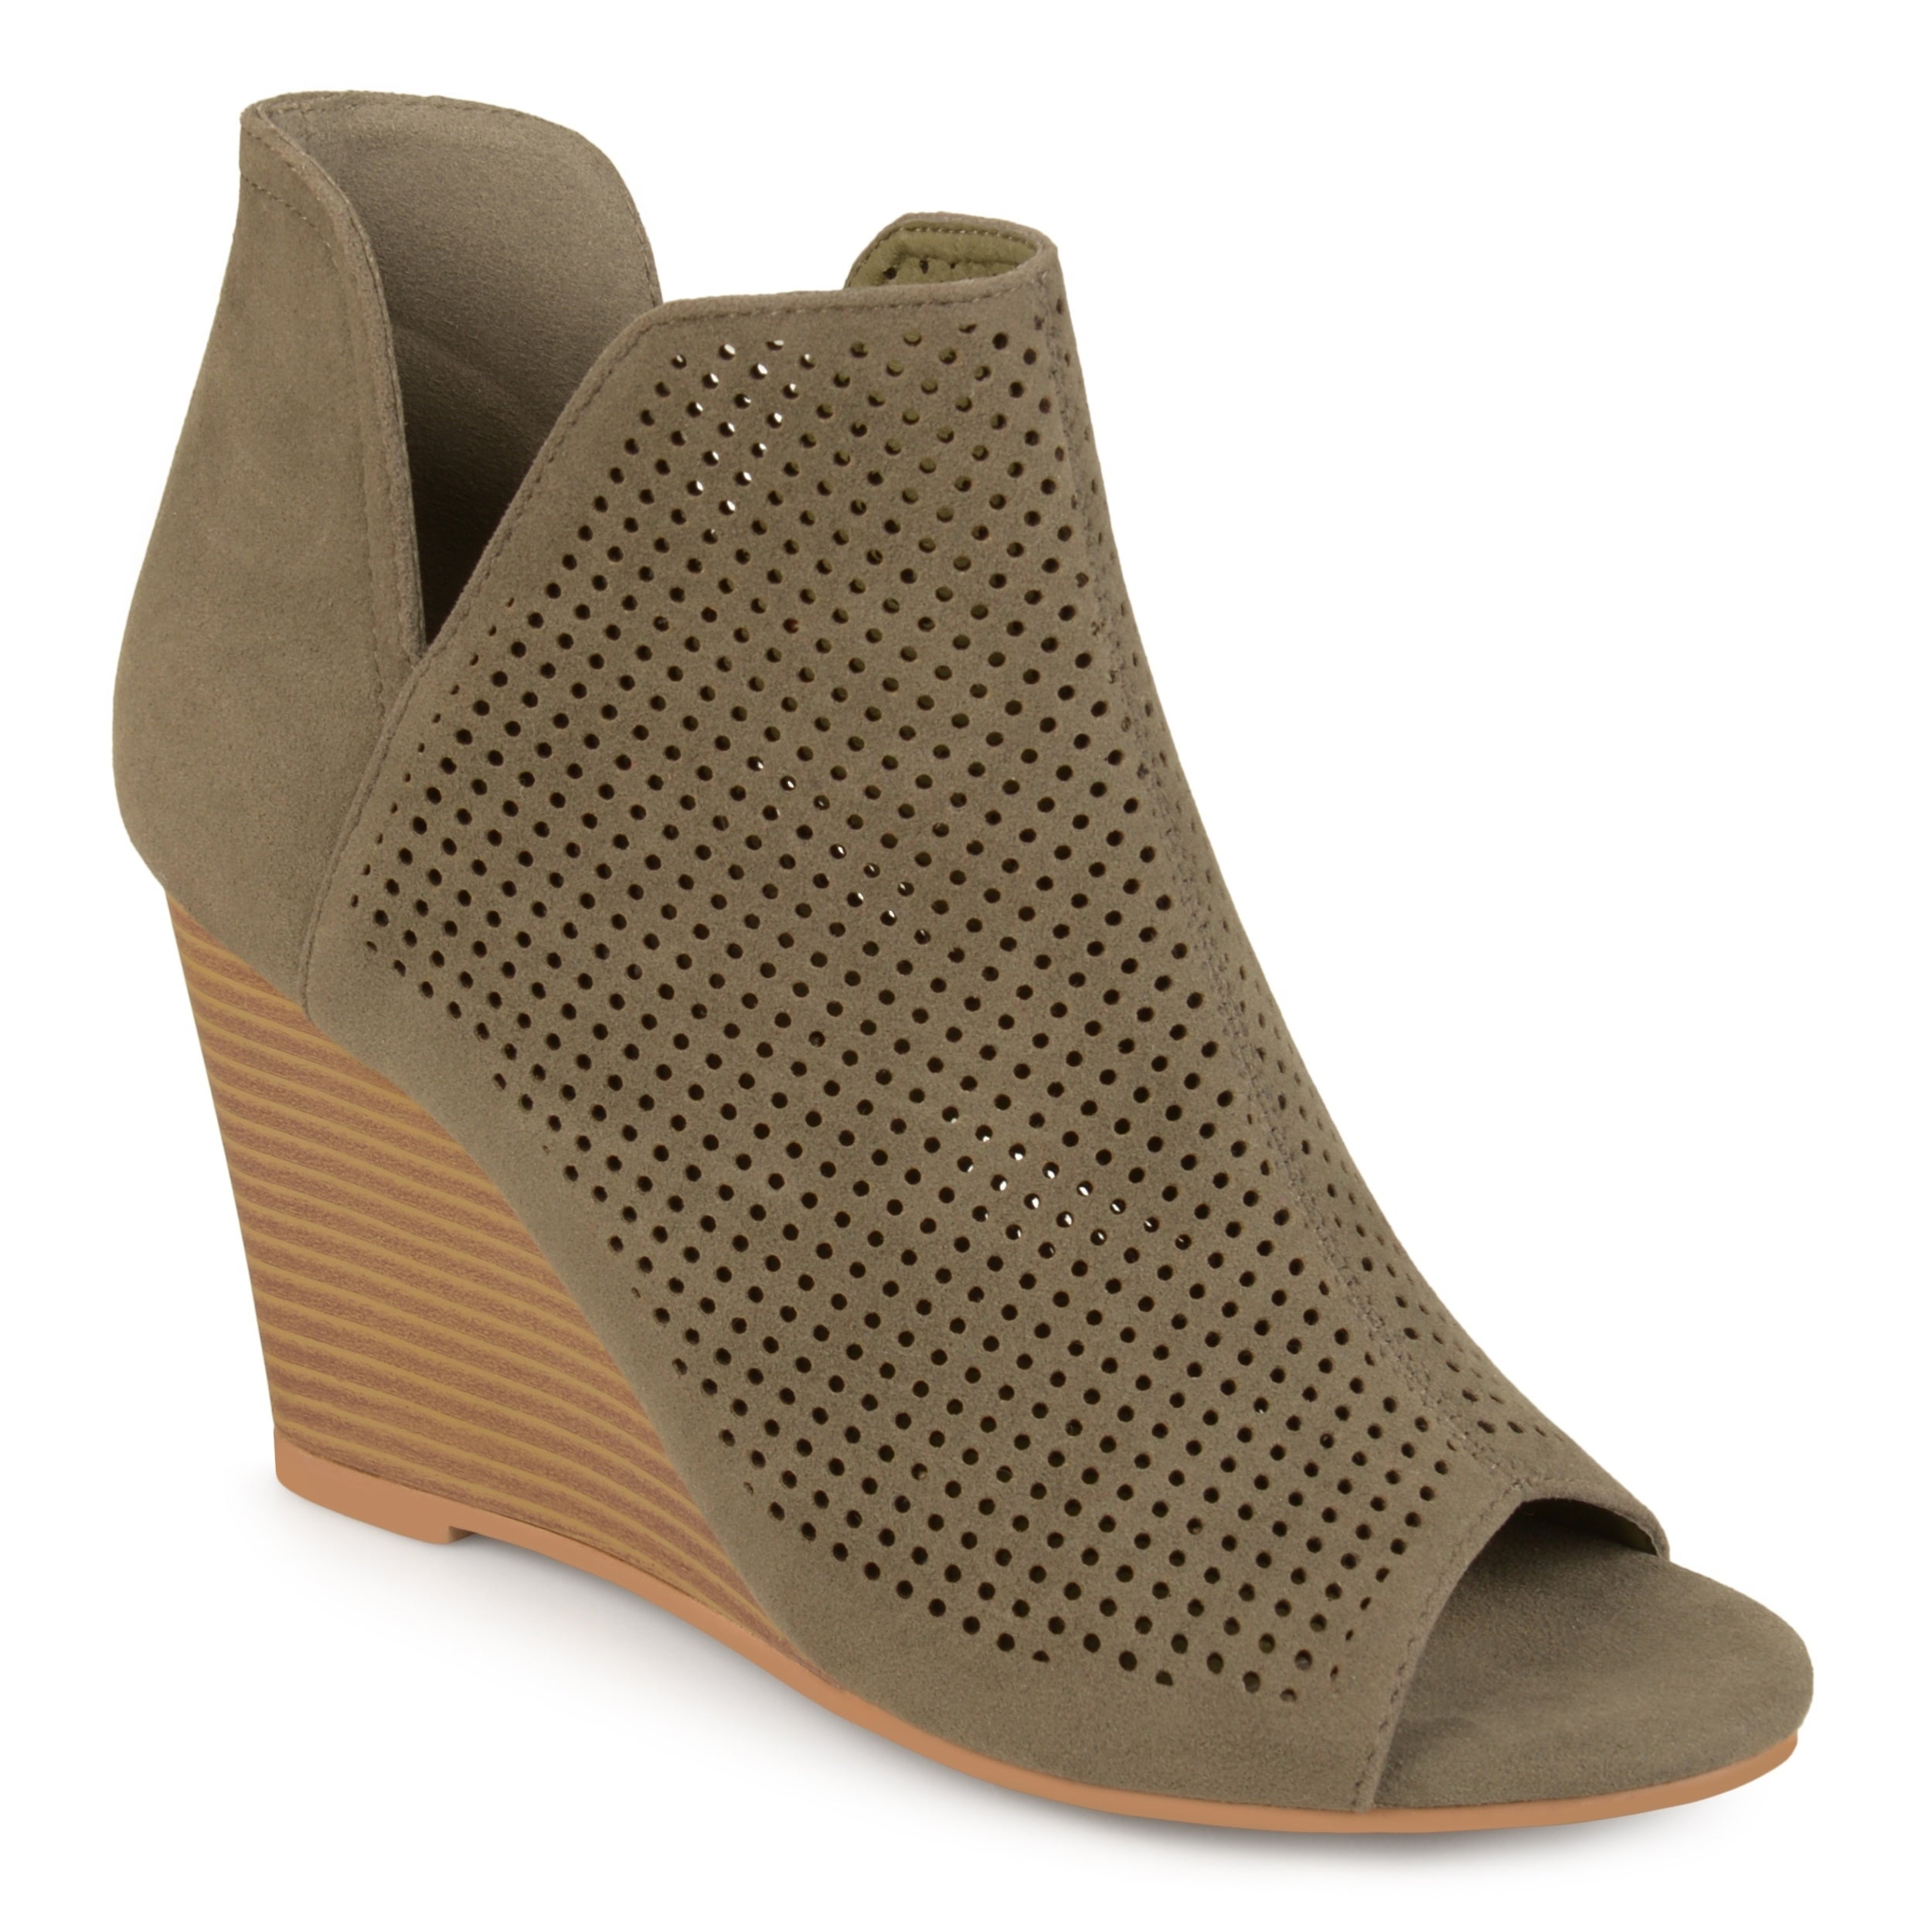 1c1704abb7fd Shop Journee Collection Women s  Andies  Open-toe Laser Cut Wedges - Free  Shipping Today - Overstock - 16413221